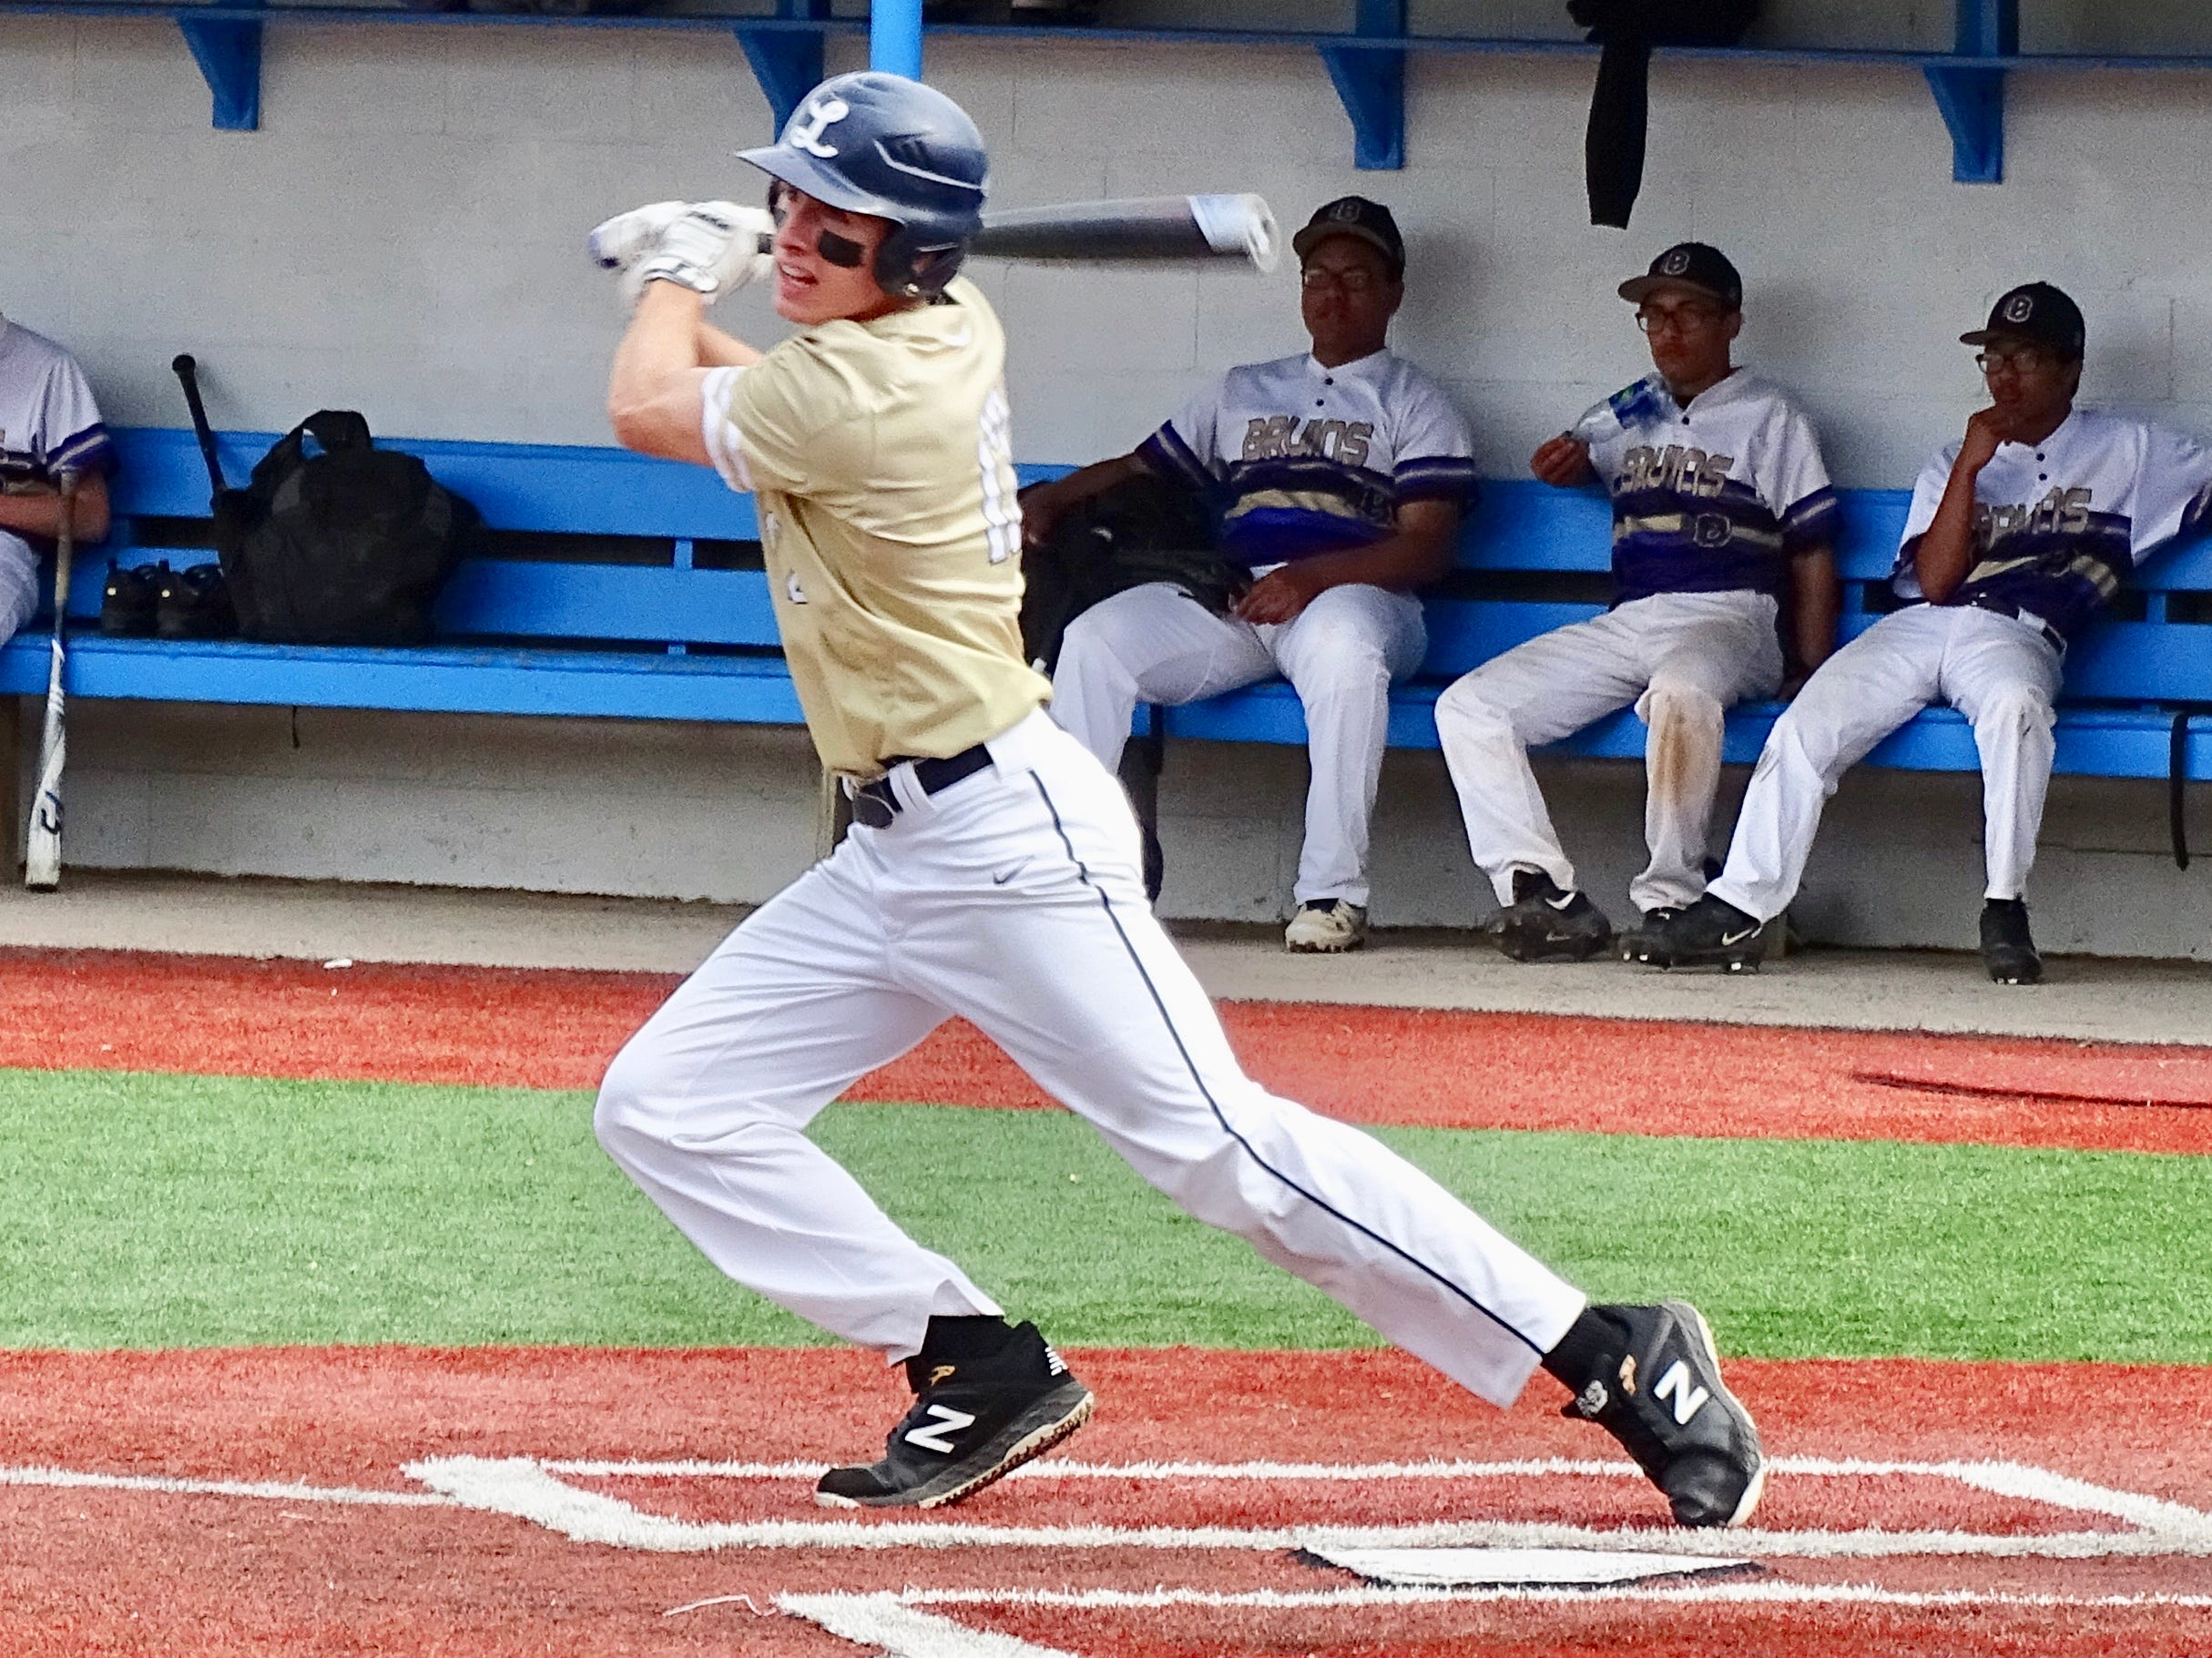 Lancaster's Casey Finck hits an RBI triple in the first inning of the Golden Gales' 5-0 tournament win over Briggs.